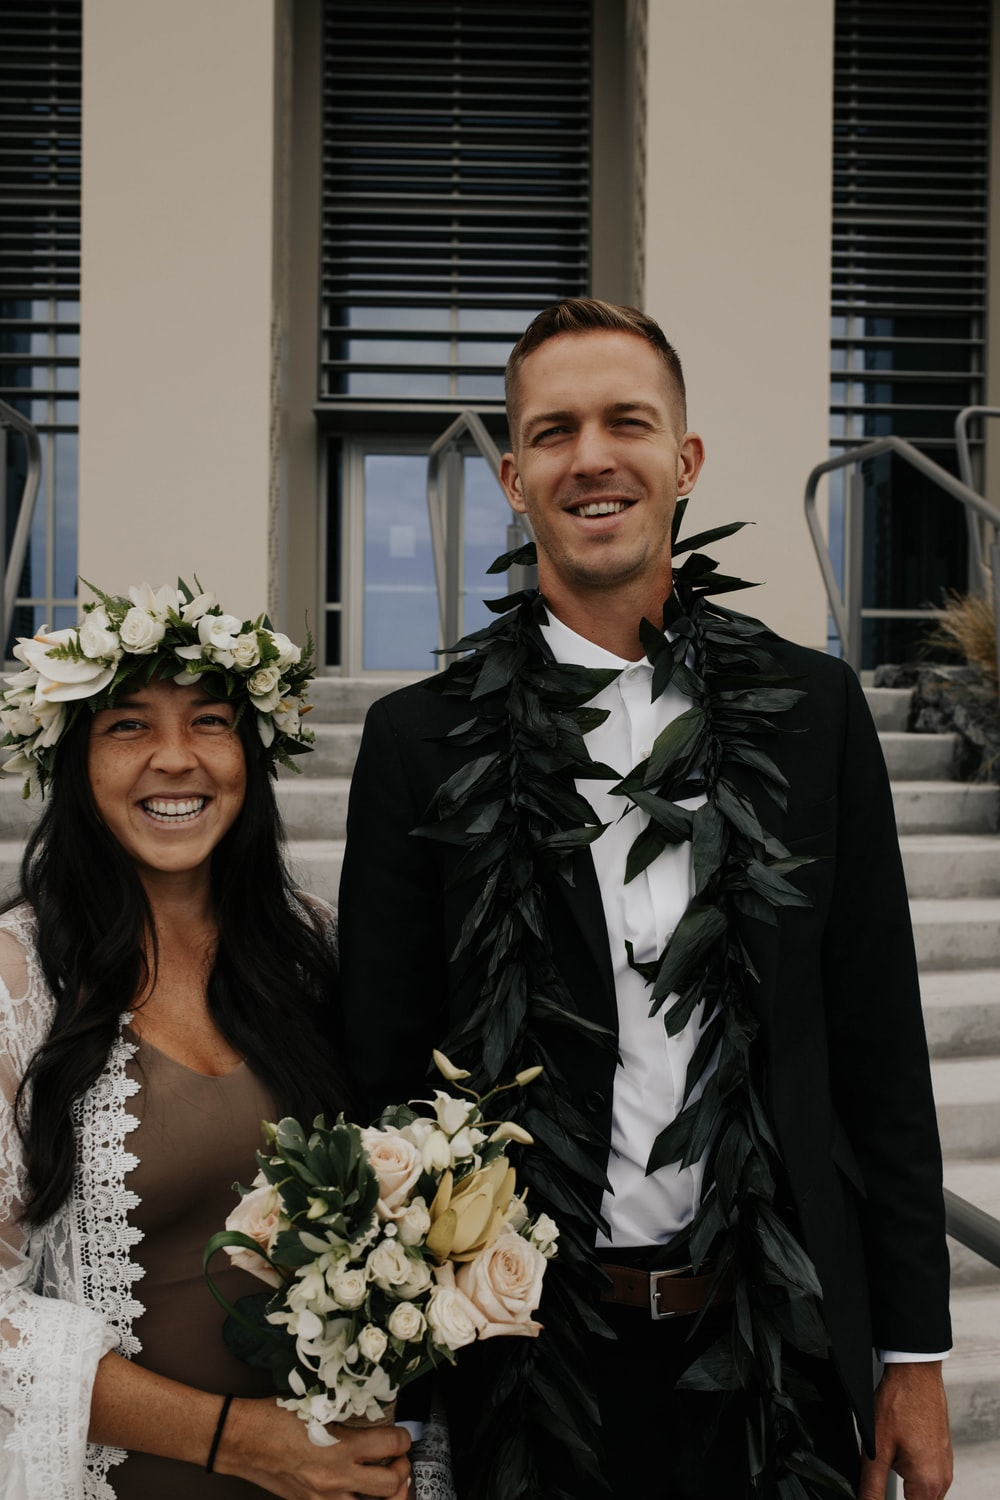 woman in white floral wedding dress beside man in black suit